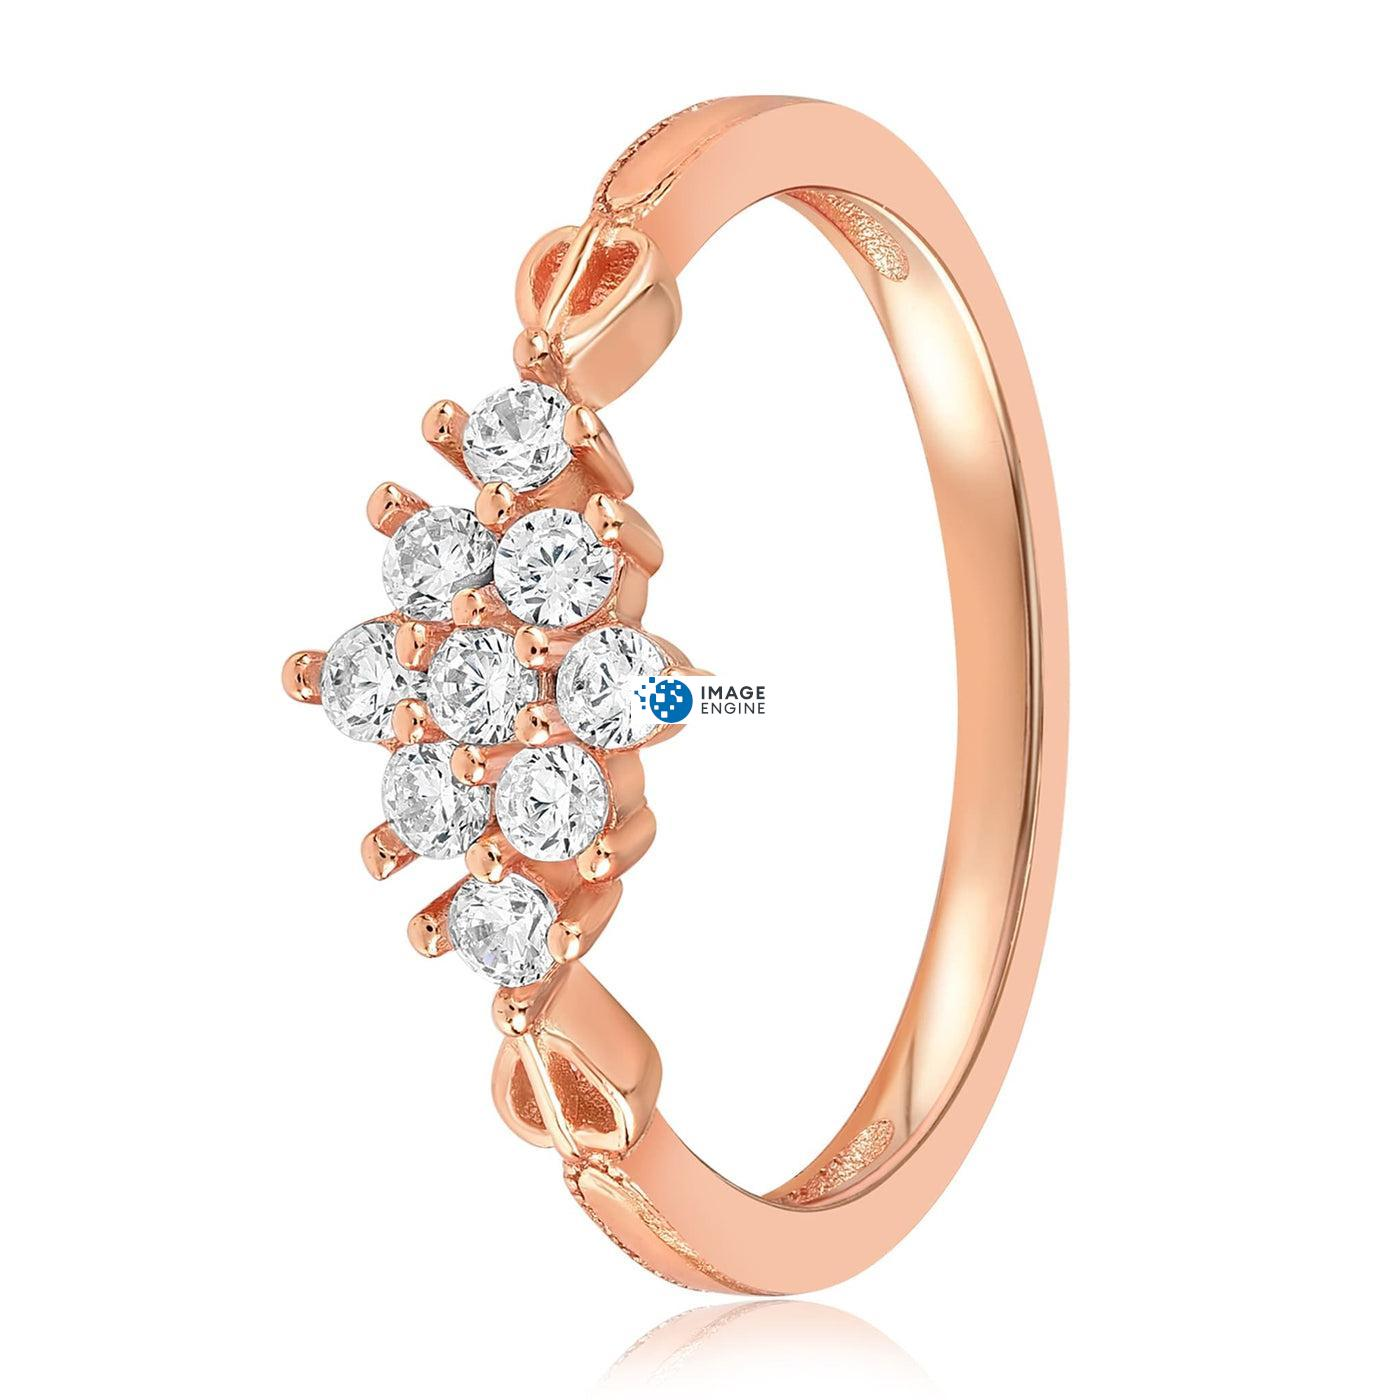 Sarah Snowflake Dainty Ring - Side View - 18K Rose Gold Vermeil